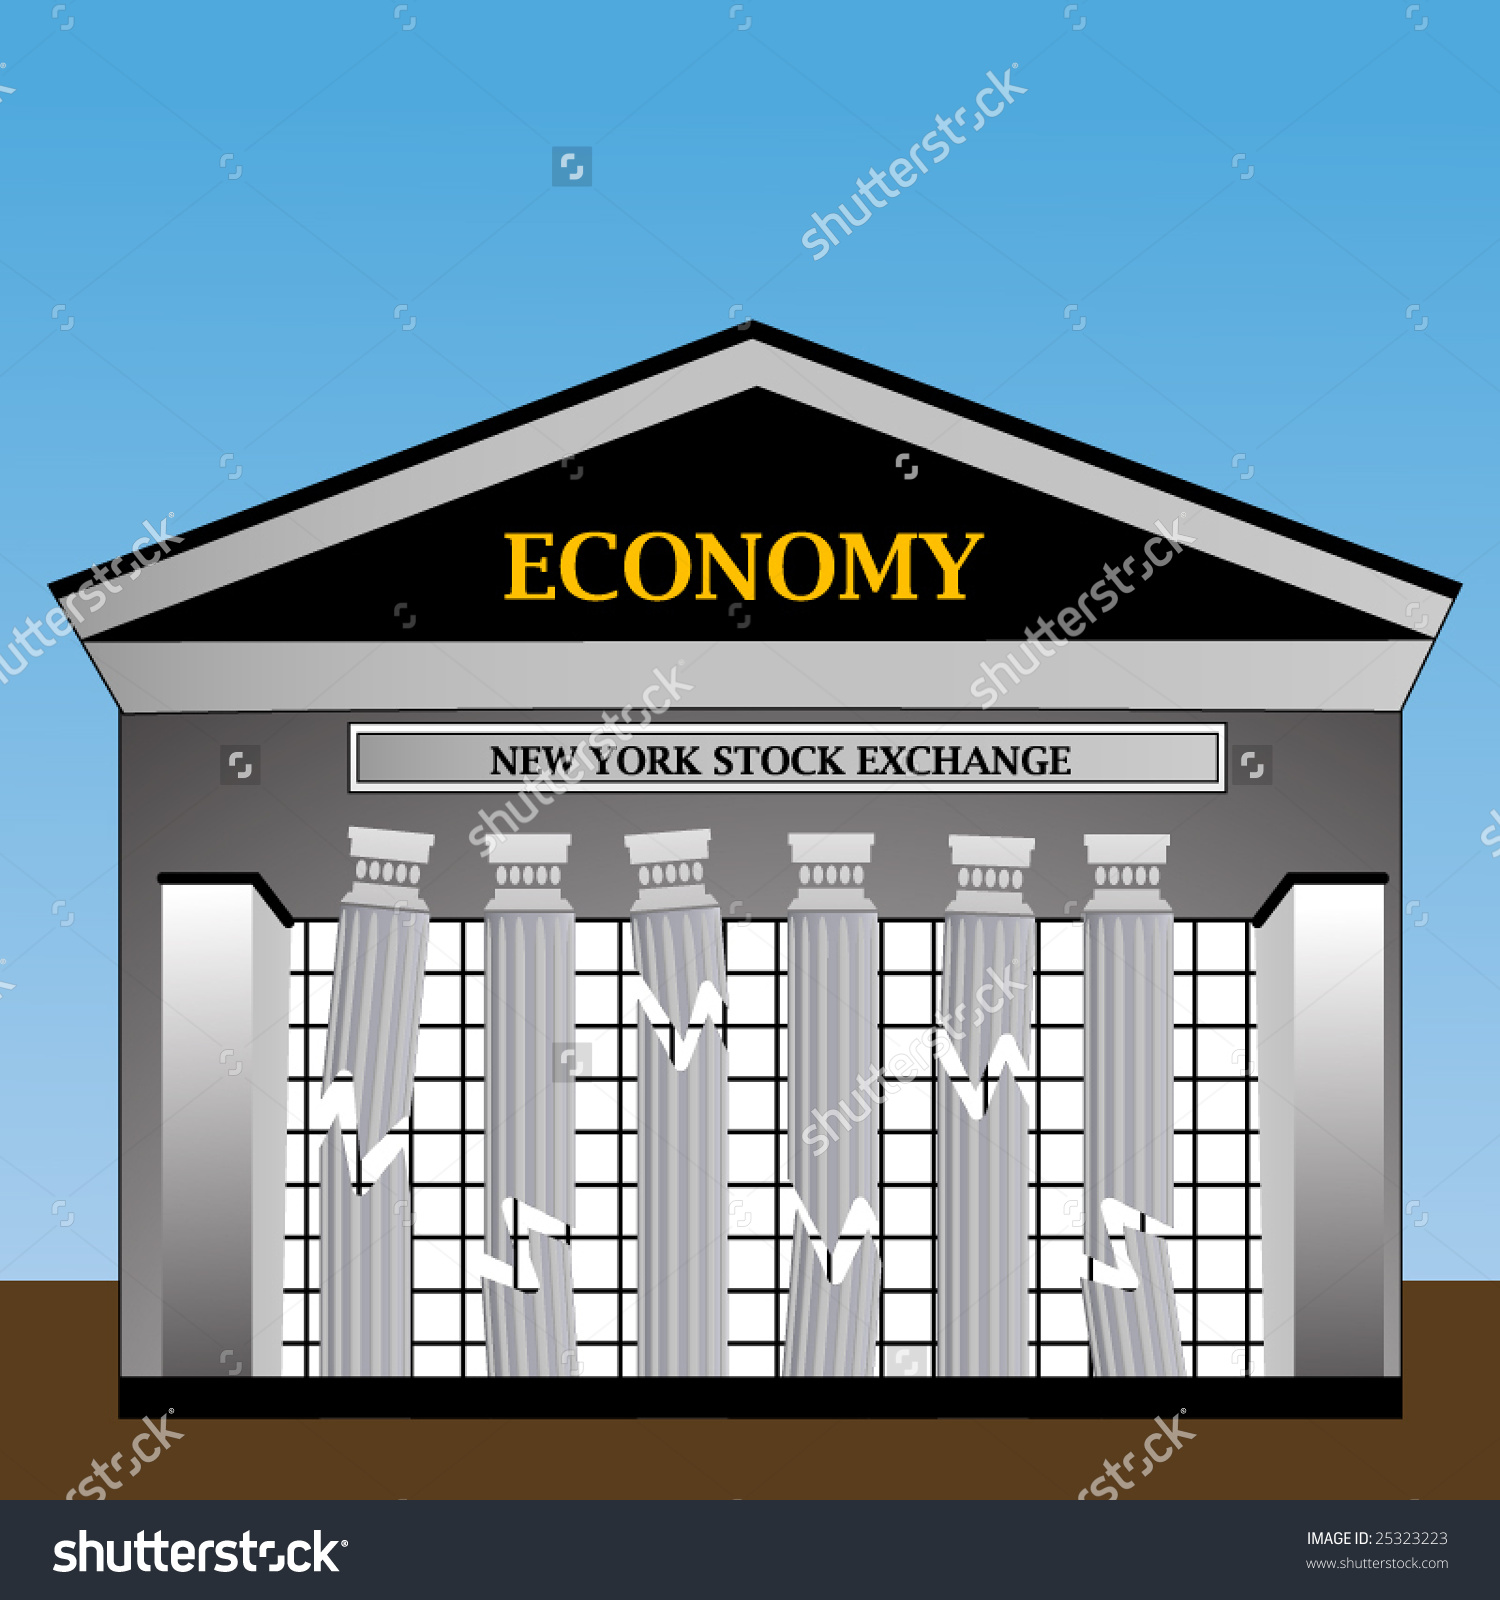 Clipart stock exchange banner black and white download New York Stock Exchange Clip Art – Clipart Free Download banner black and white download